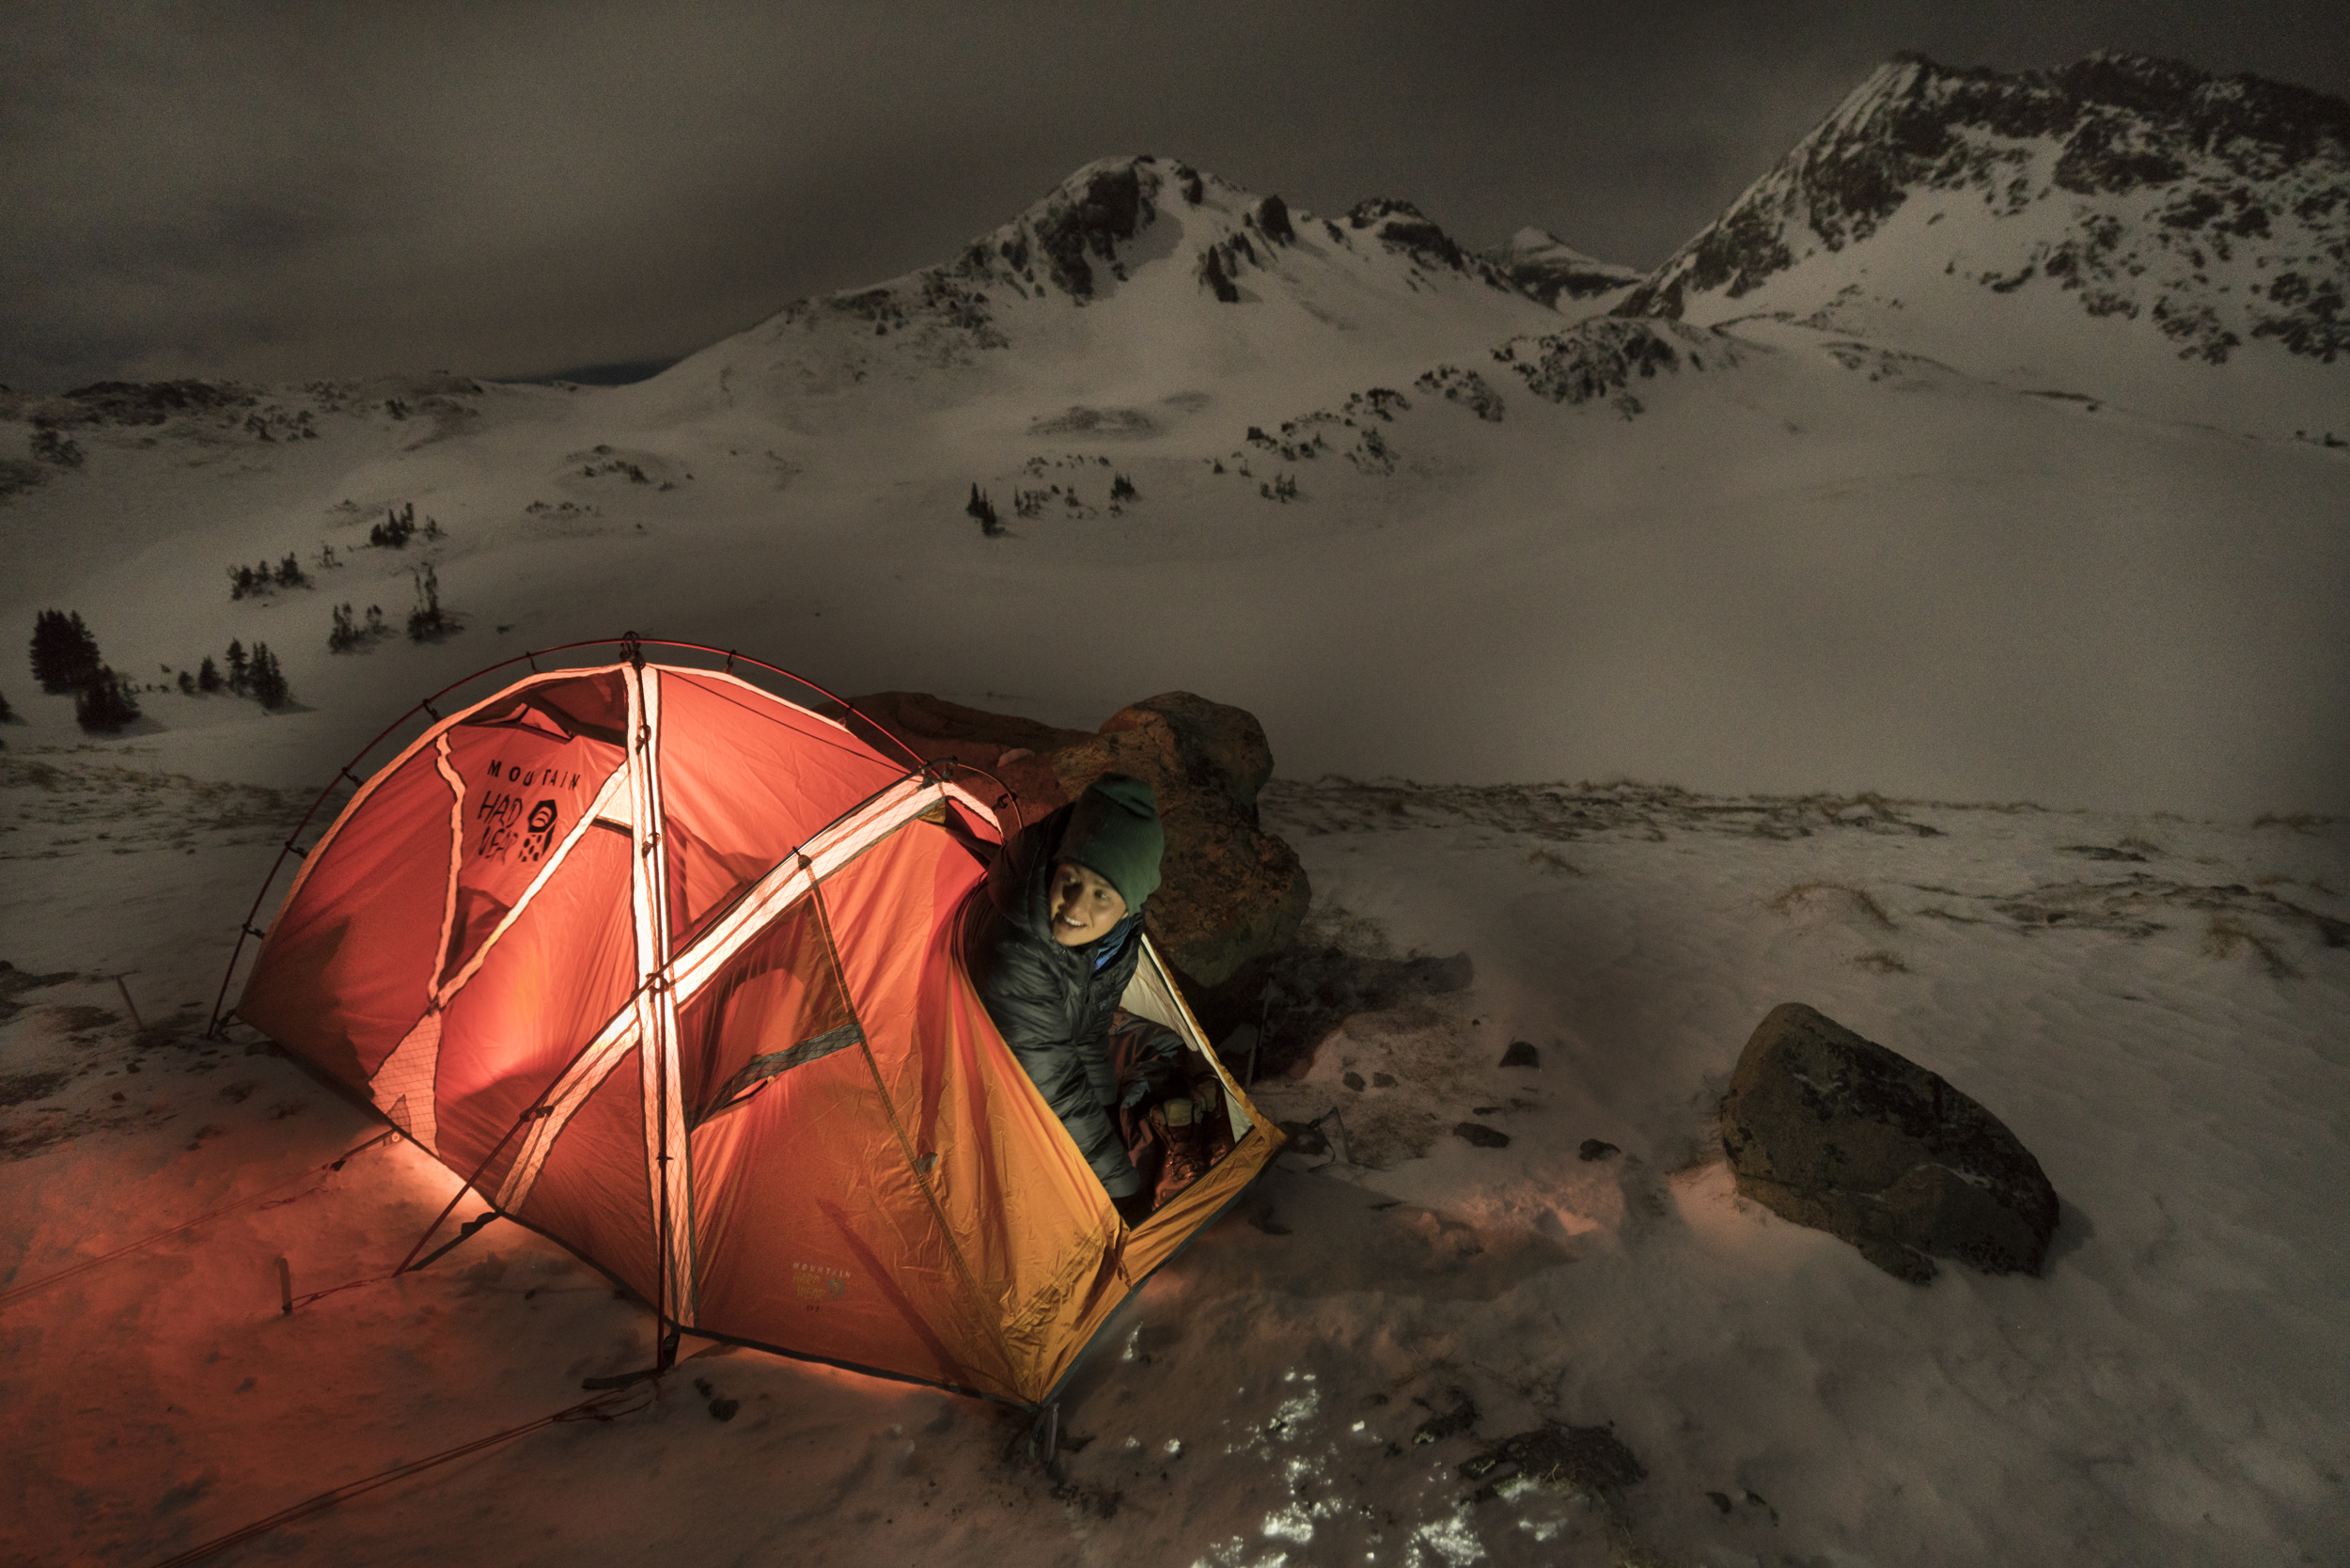 Winter camping in Colorado's high country.  American Lakes Trail, Colorado